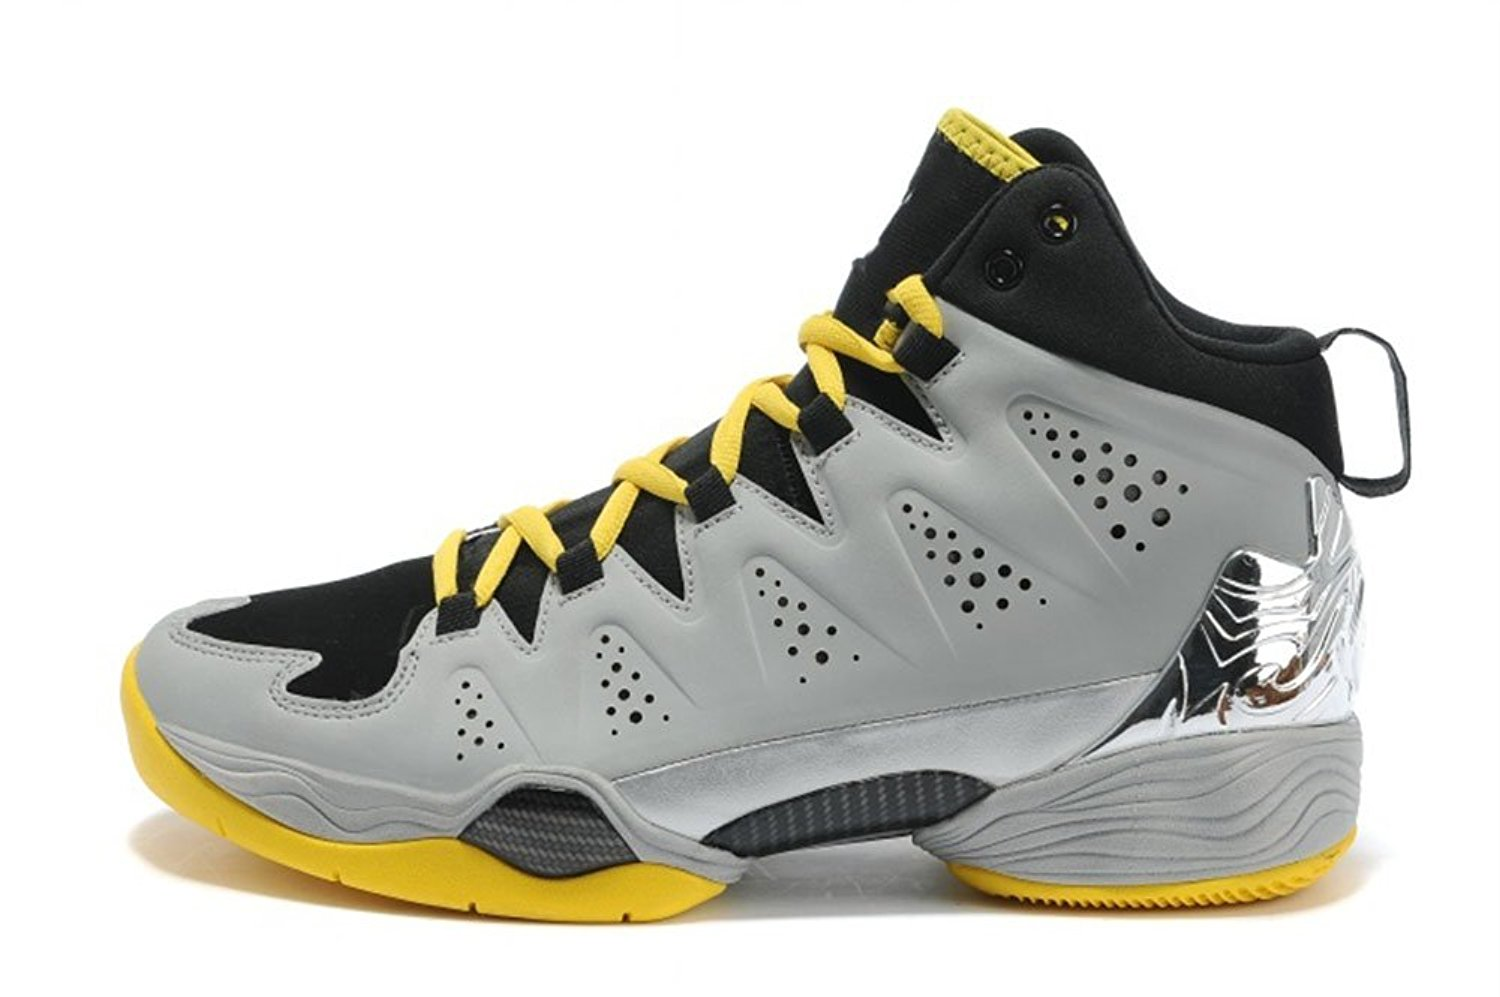 21d1d6ad3f98 Get Quotations · Air Melo M10 Carmelo Anthony Men s Shoes